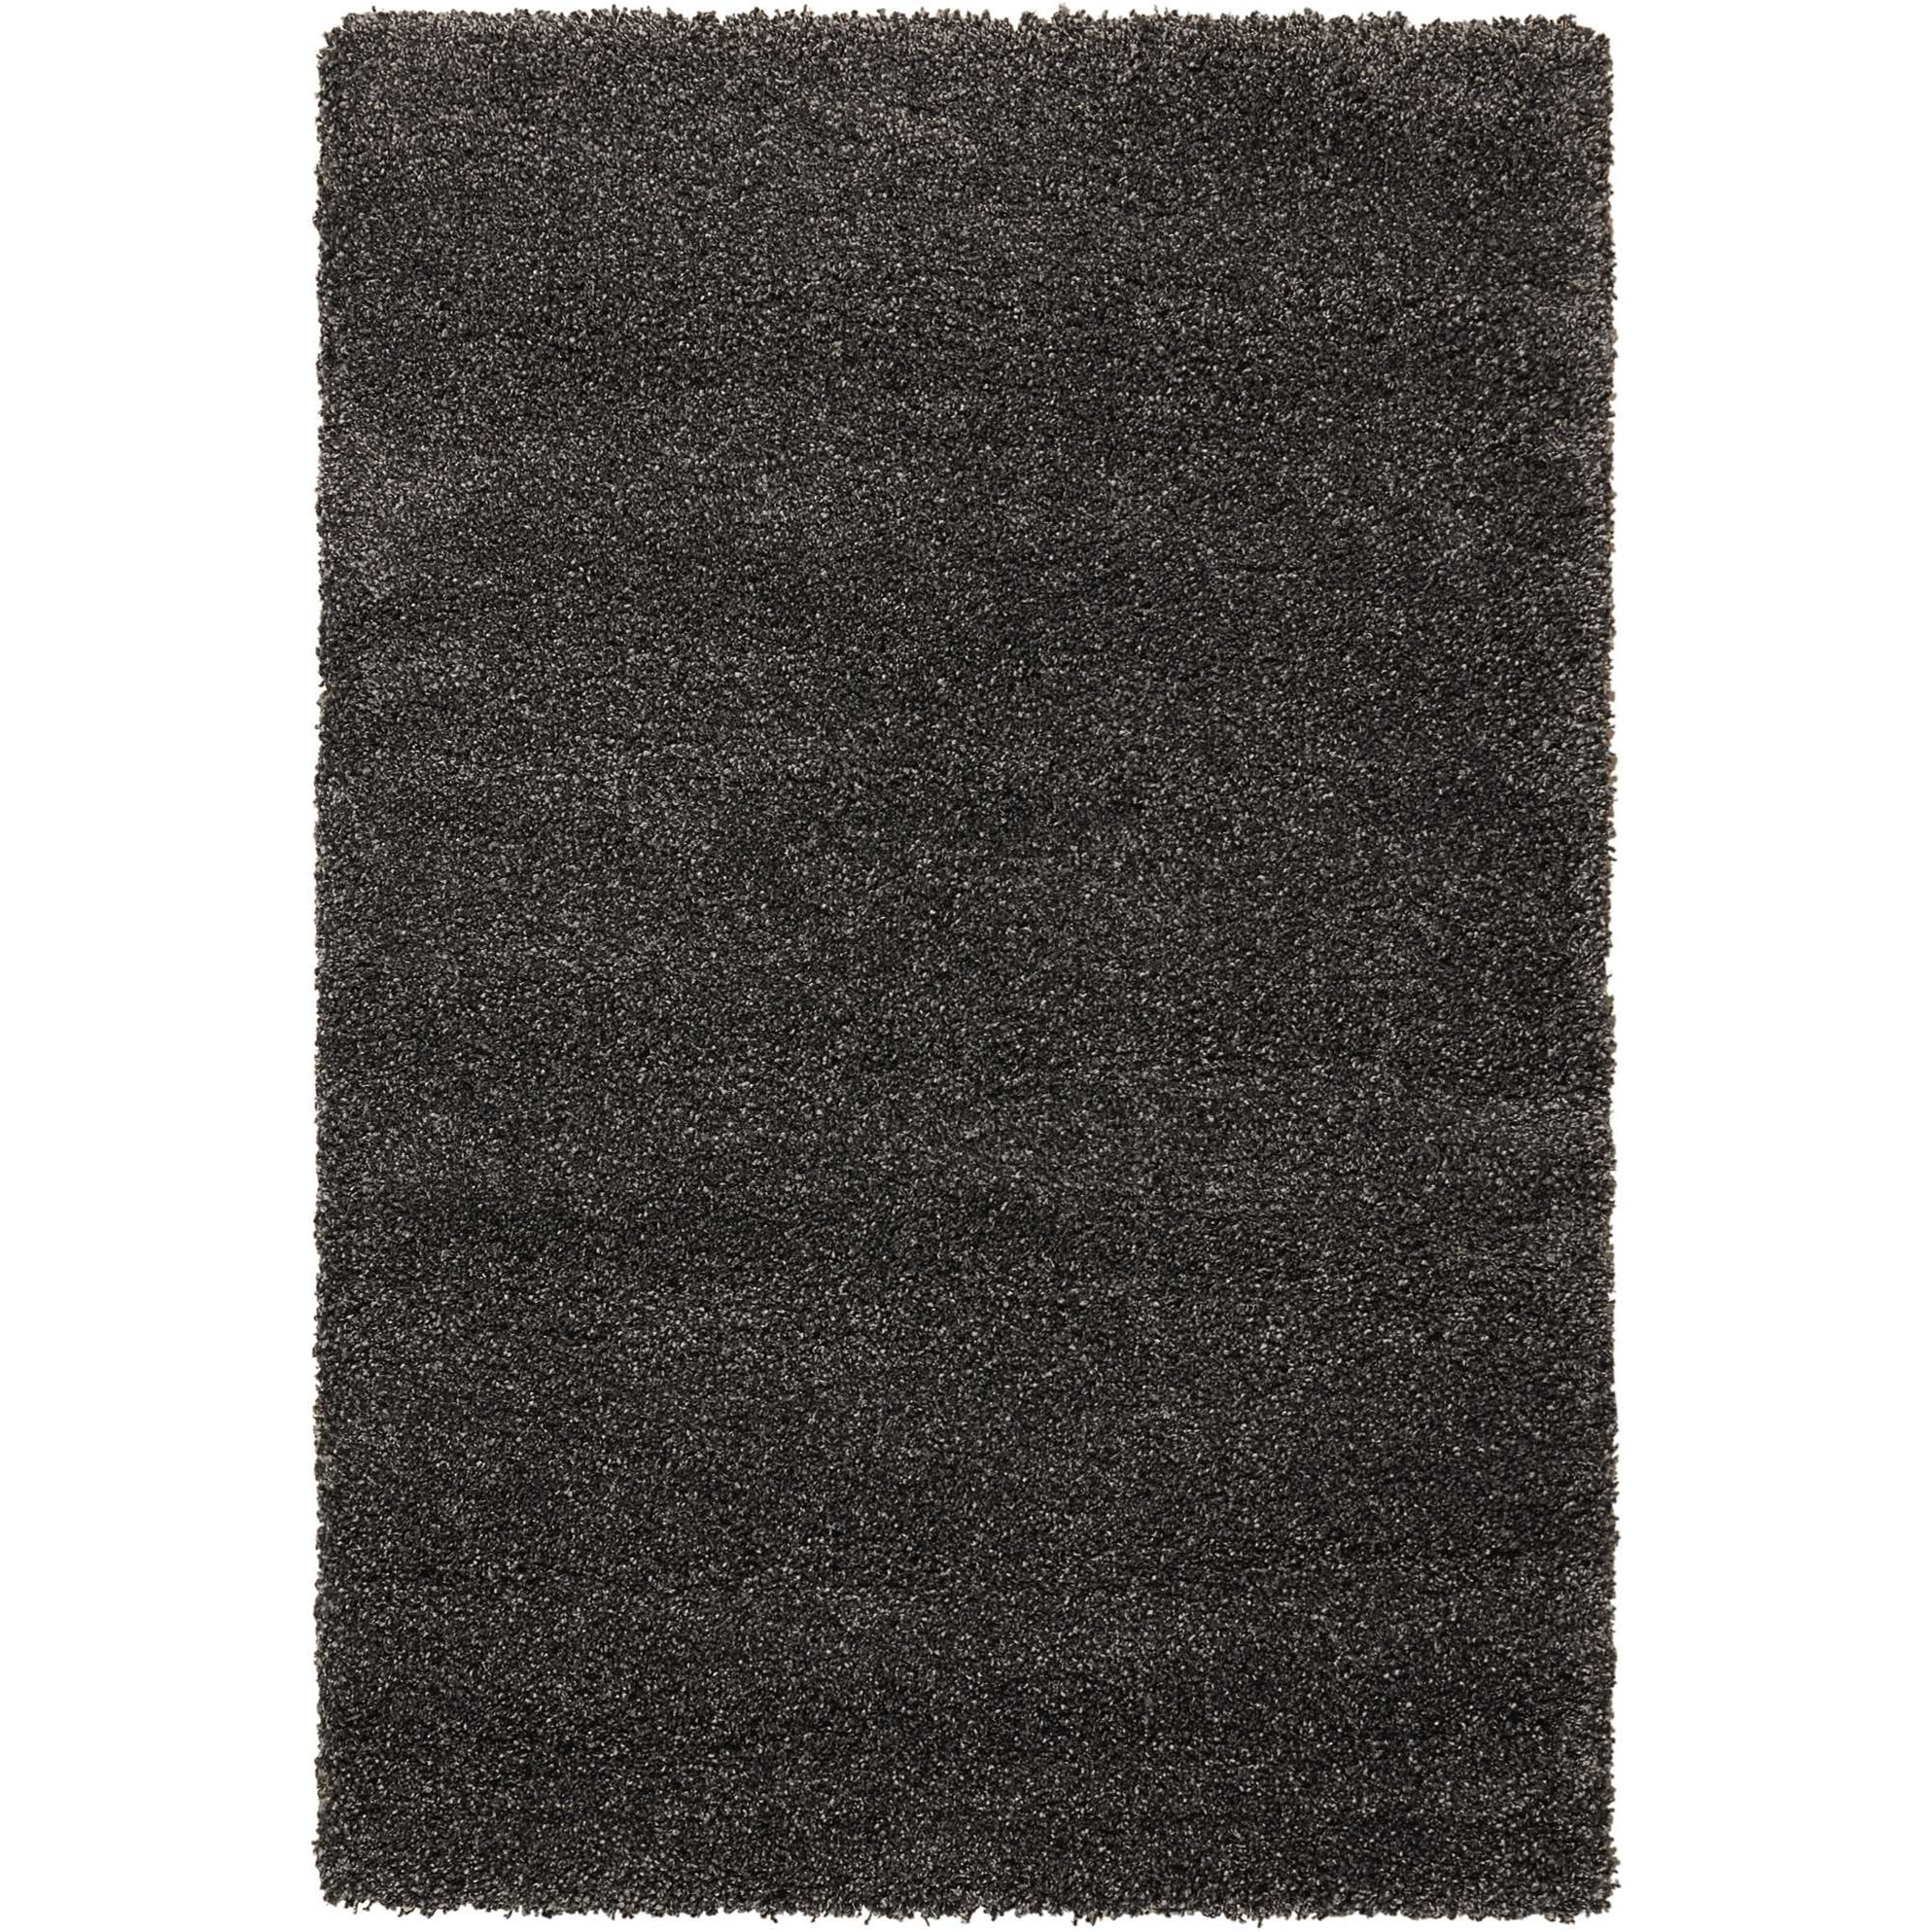 """Amore 7'10"""" x 10'10"""" Dark Grey Rectangle Rug by Nourison at Home Collections Furniture"""